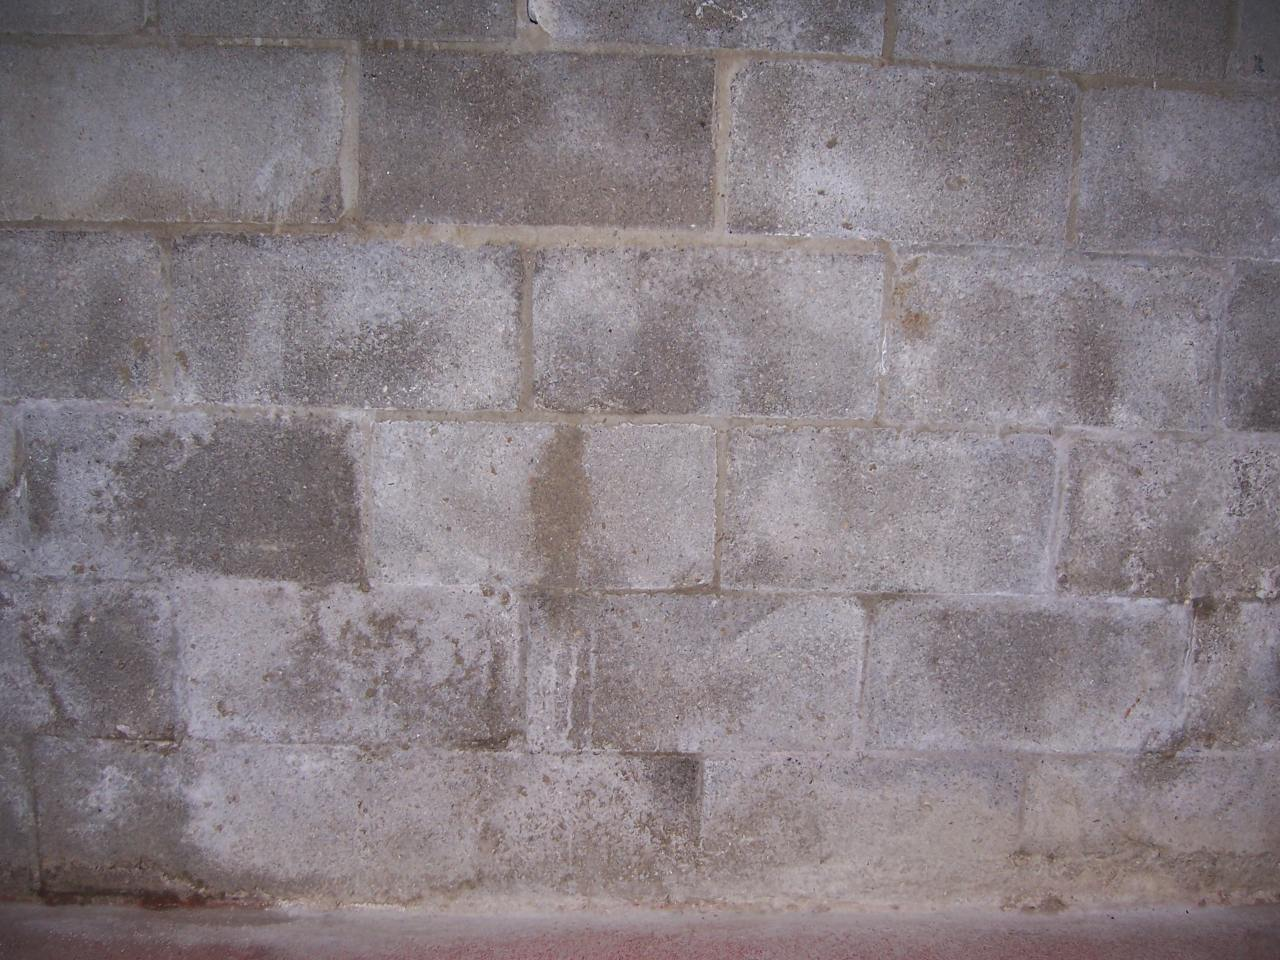 Basement Concrete Block Mortar Seepage Advice Building